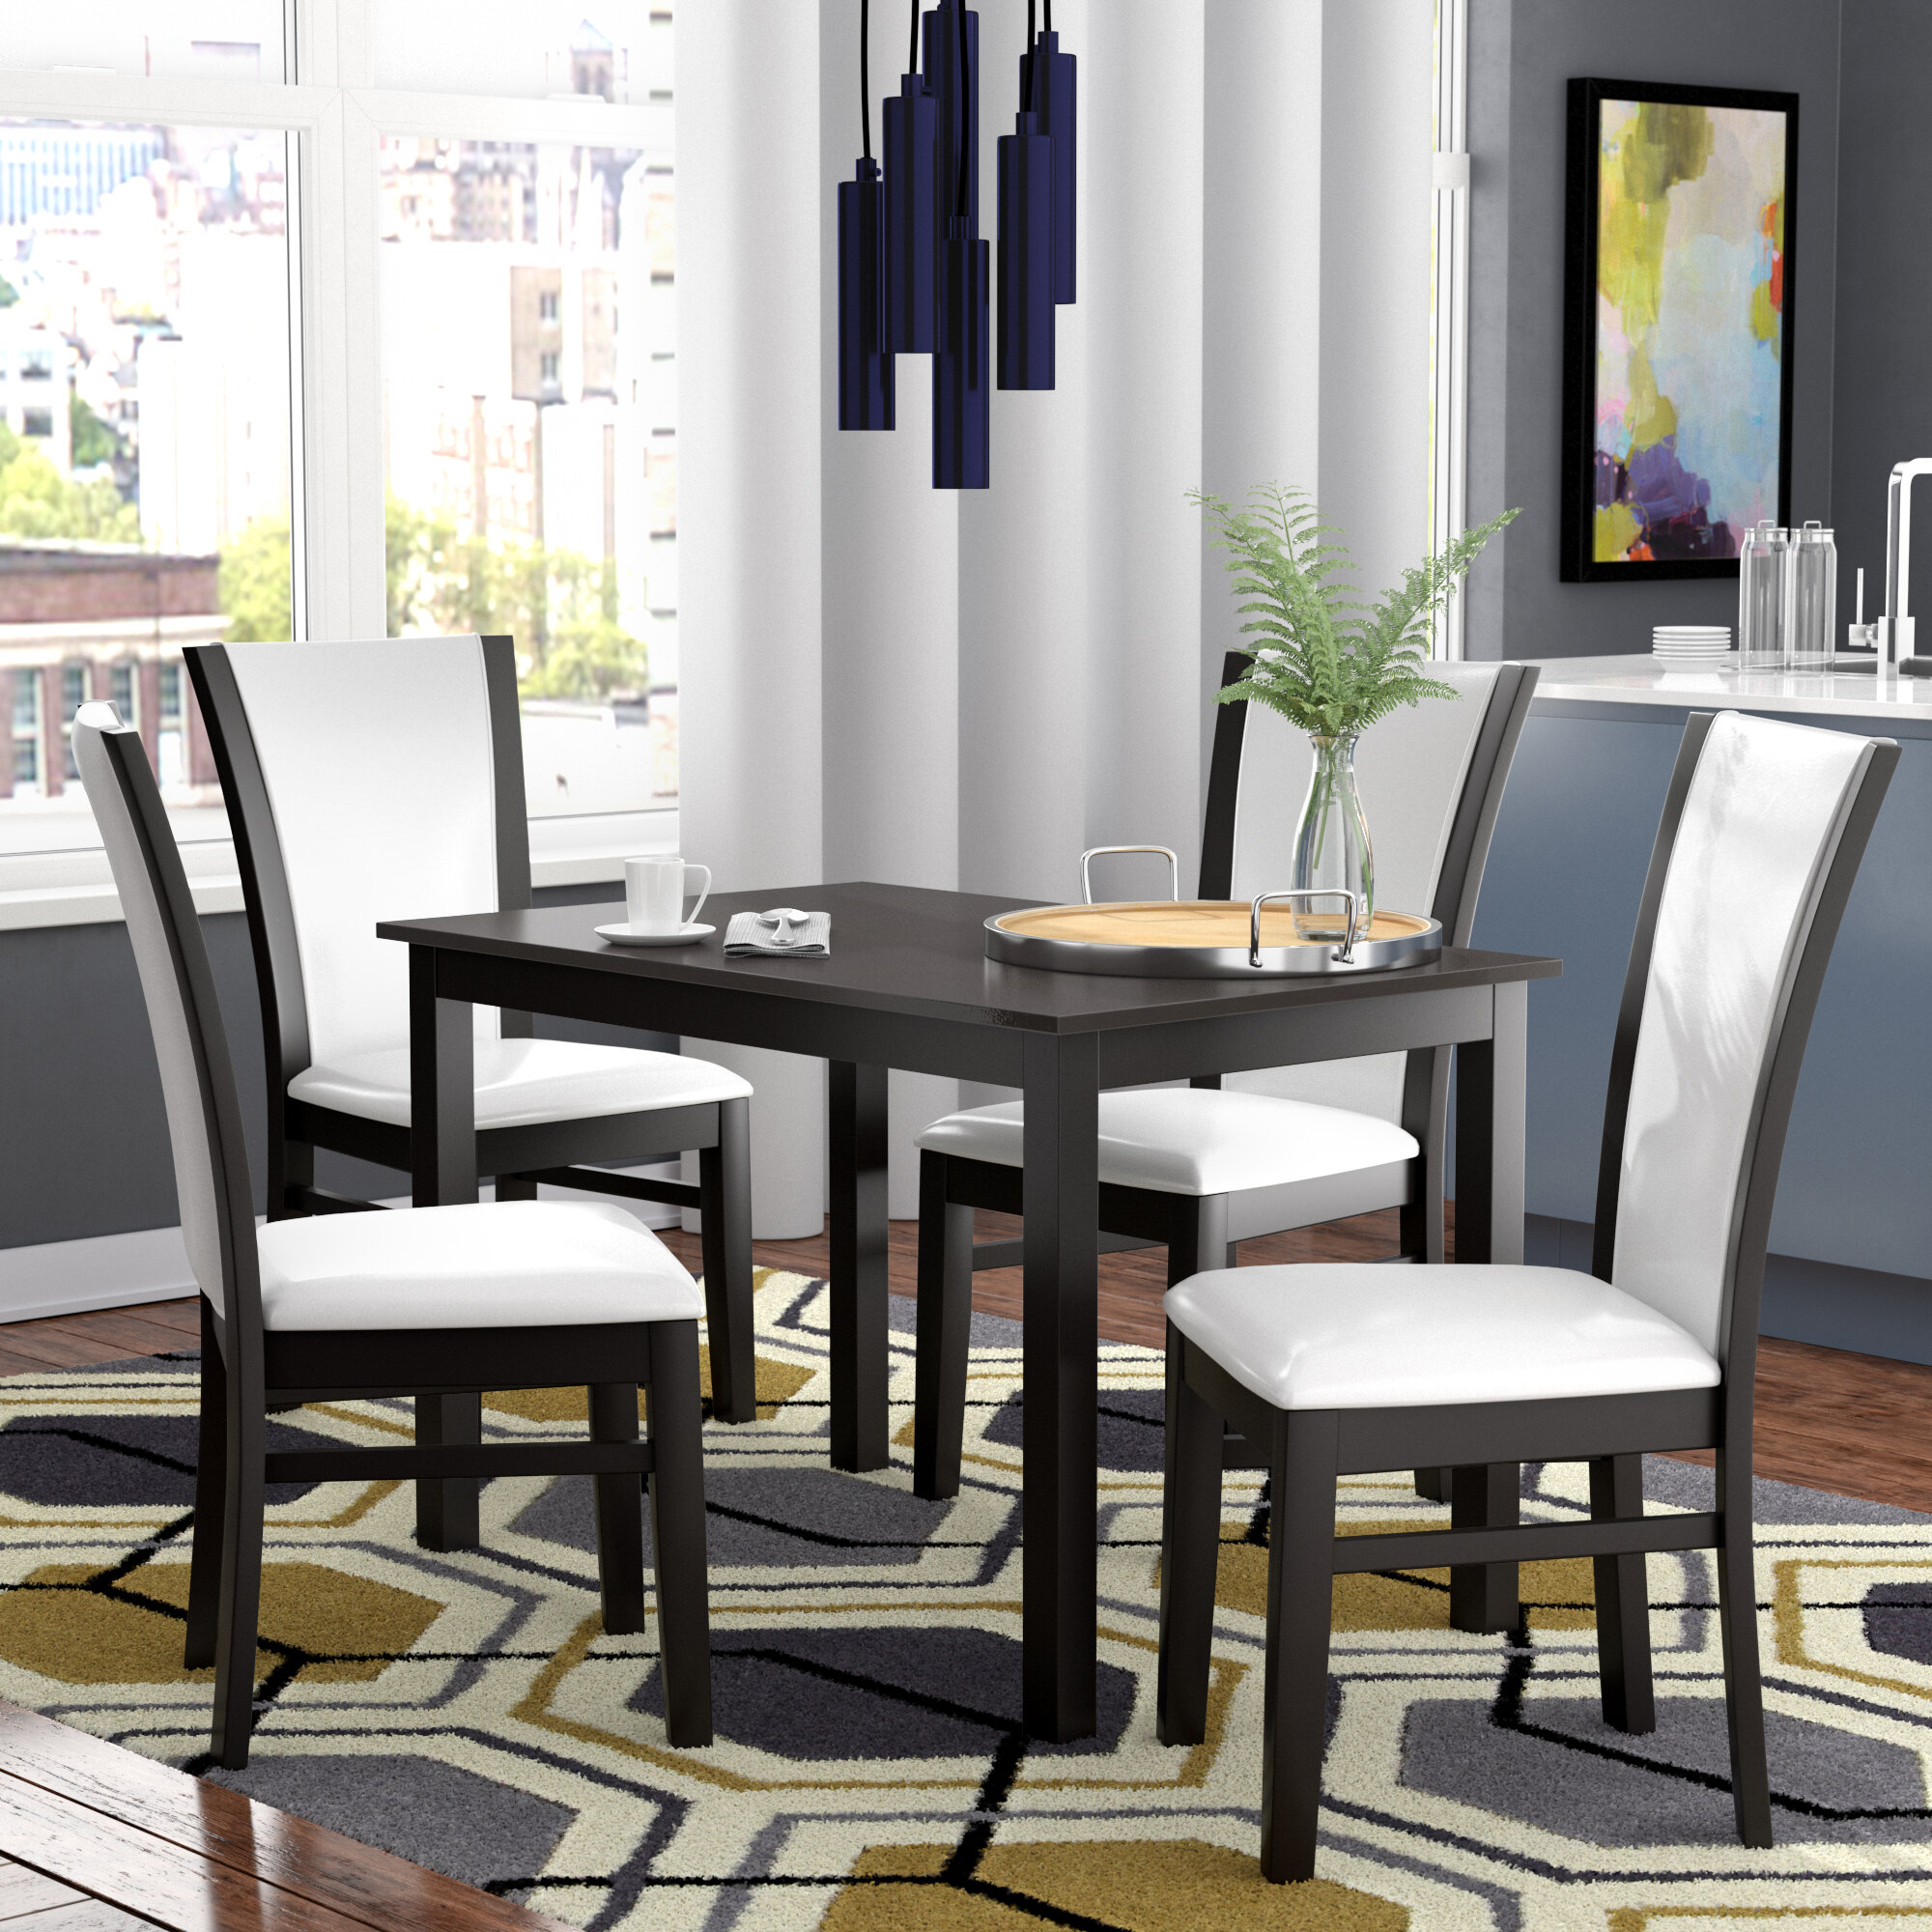 Orren Ellis Ontonagon Modern And Contemporary 5 Piece Breakfast Nook Dining Set Reviews Wayfair